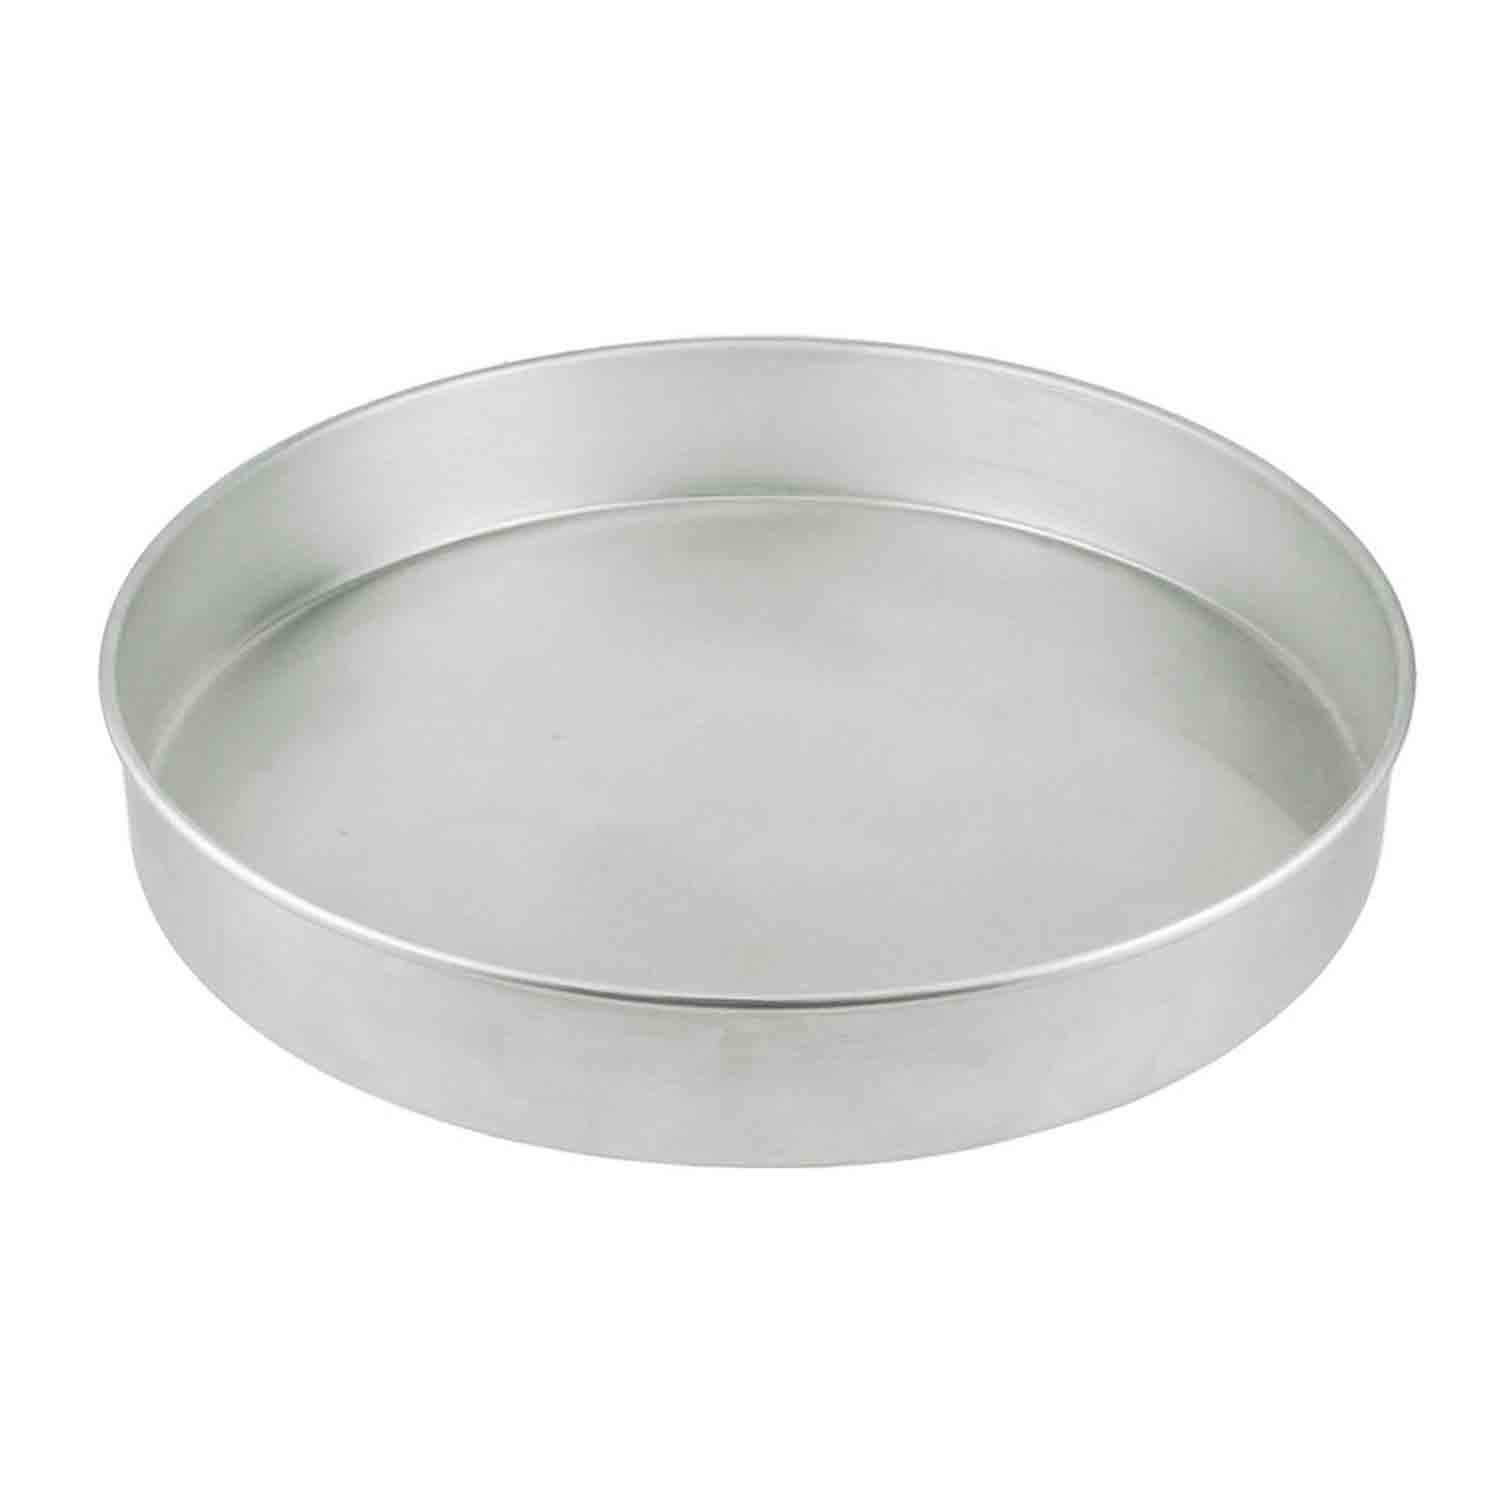 "14 x 2"" Magic Line Round Cake Pan"